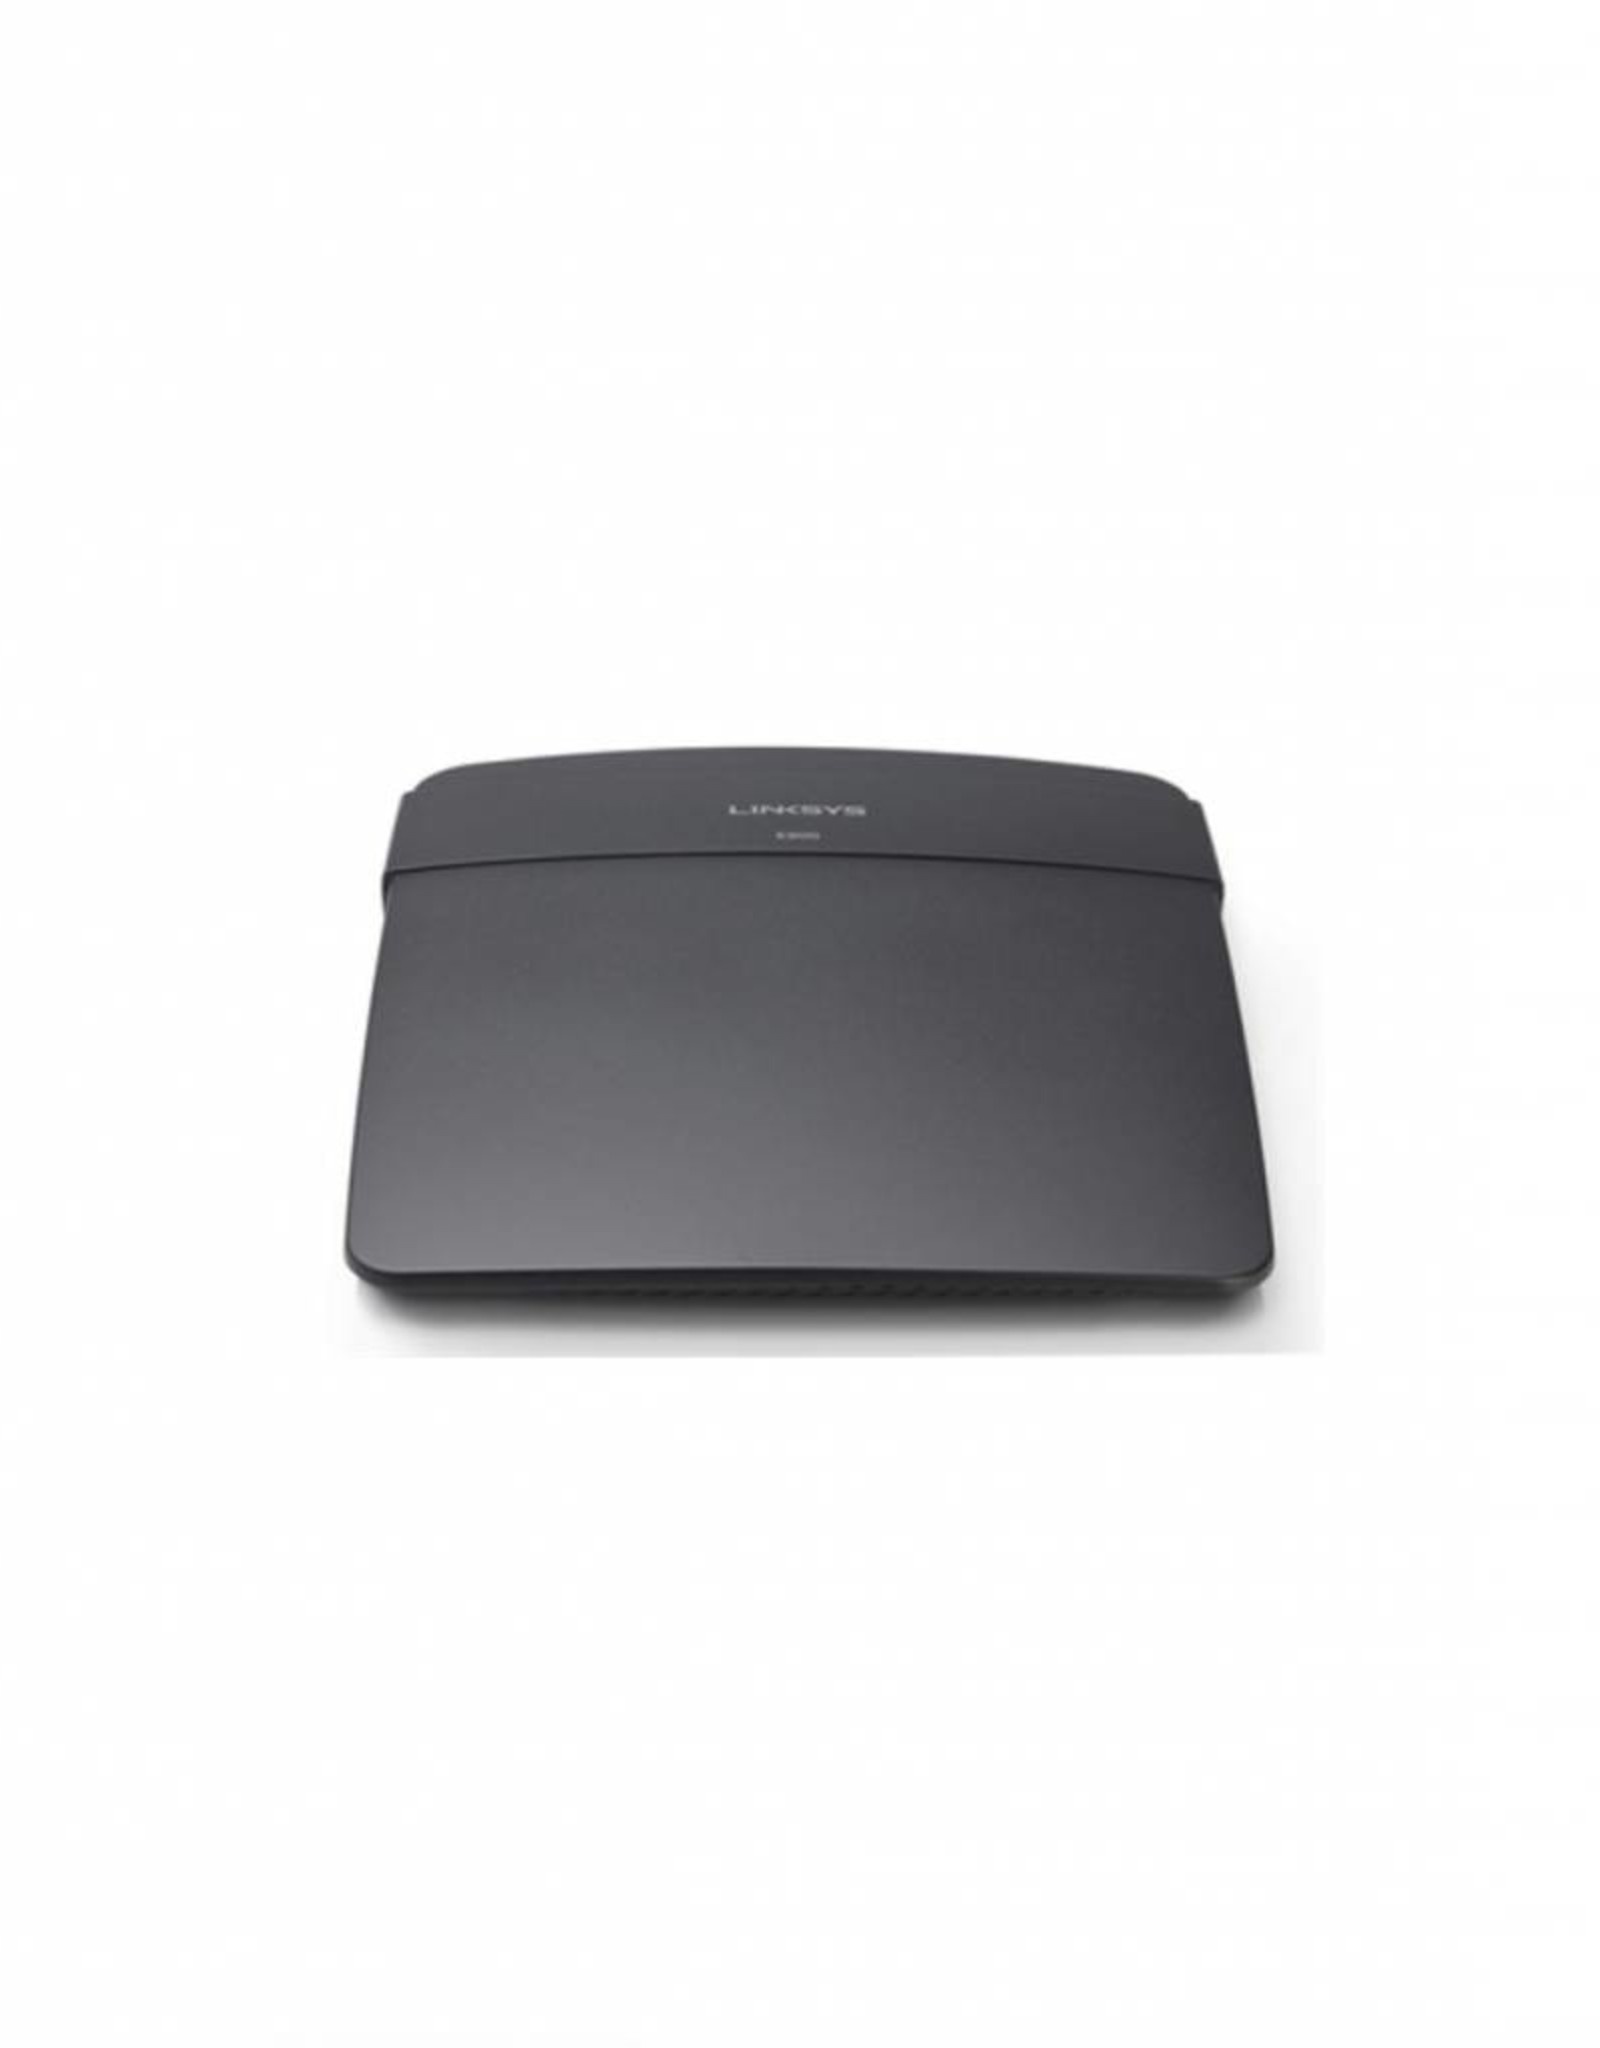 LINKSYS LINKSYS N300 WIRELESS-N ROUTER